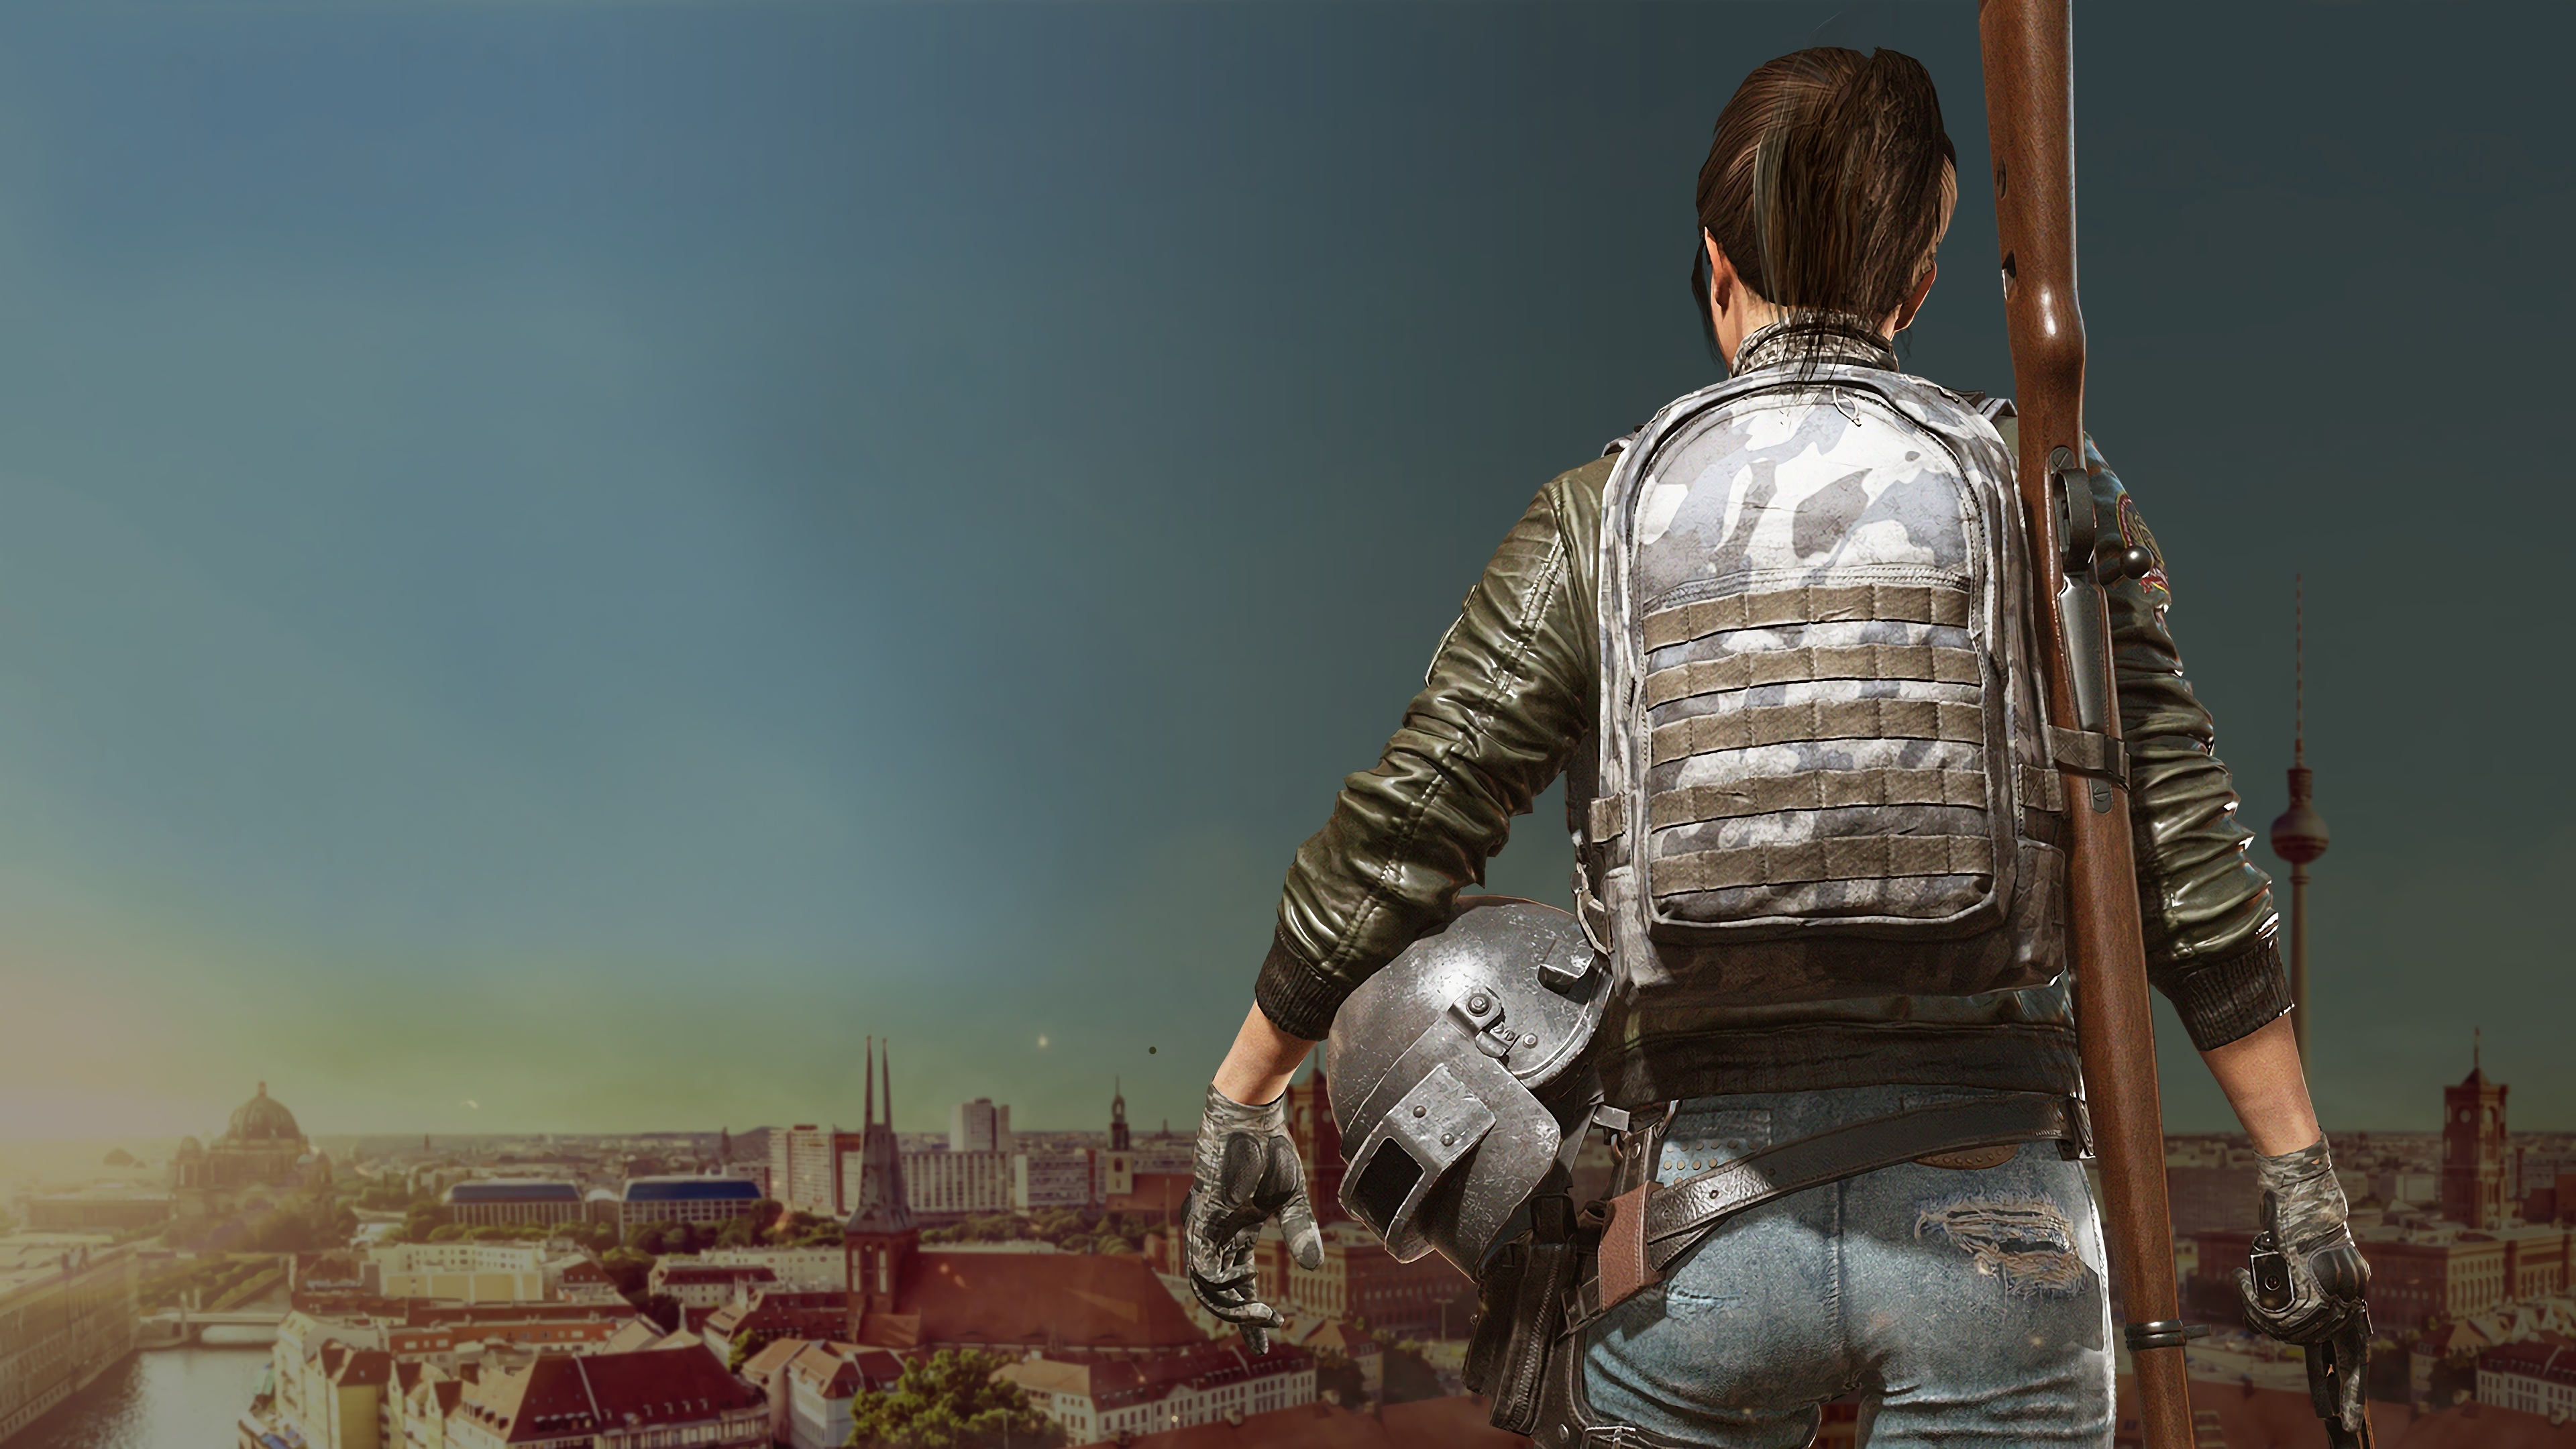 2048x1152 Pubg Game Girl Fanart 2048x1152 Resolution Hd 4k: Game Girl Pubg 4k, HD Games, 4k Wallpapers, Images